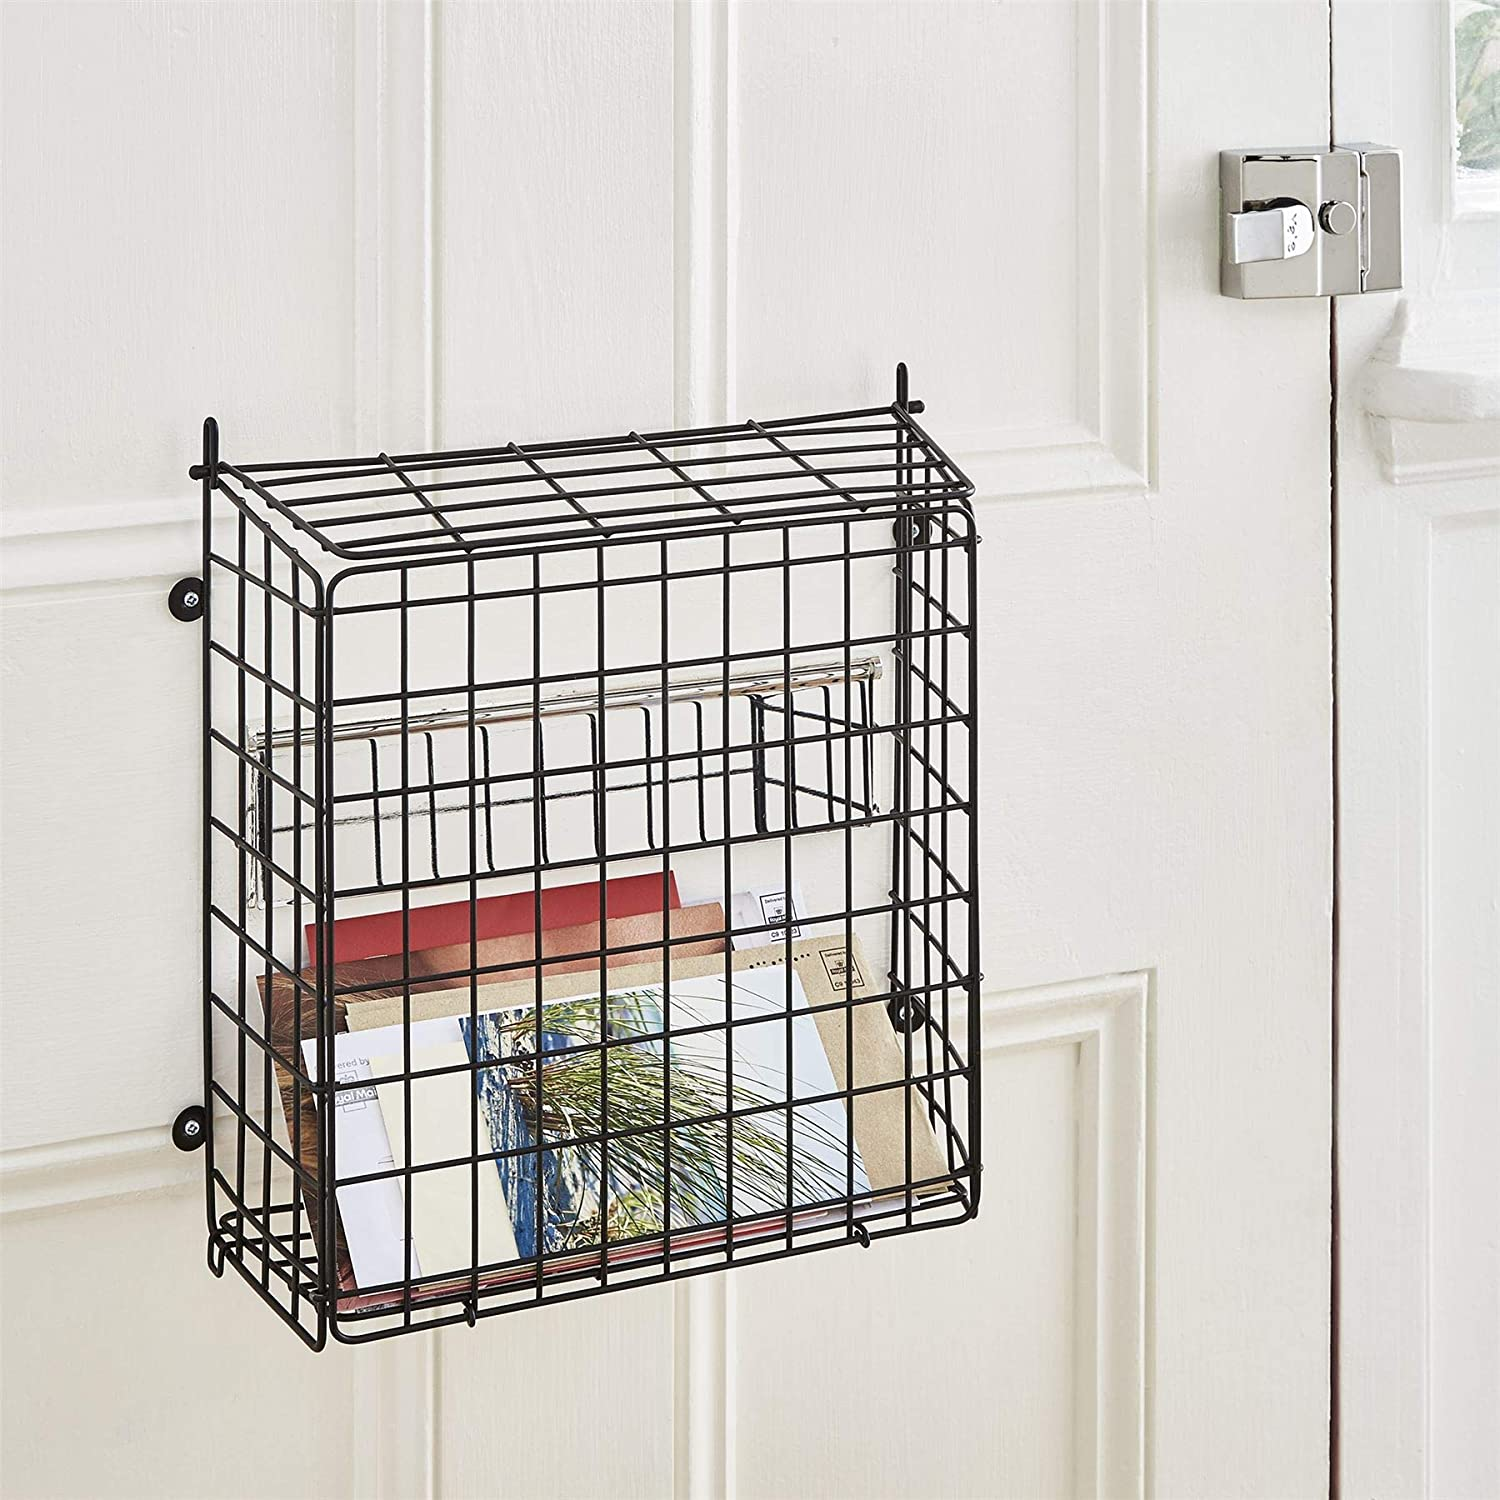 Direct Online Houseware Black Letter Box Catcher Cage with Lift Up Lid, 33.5cm H x 32cm W x 13cm D ROW2521B